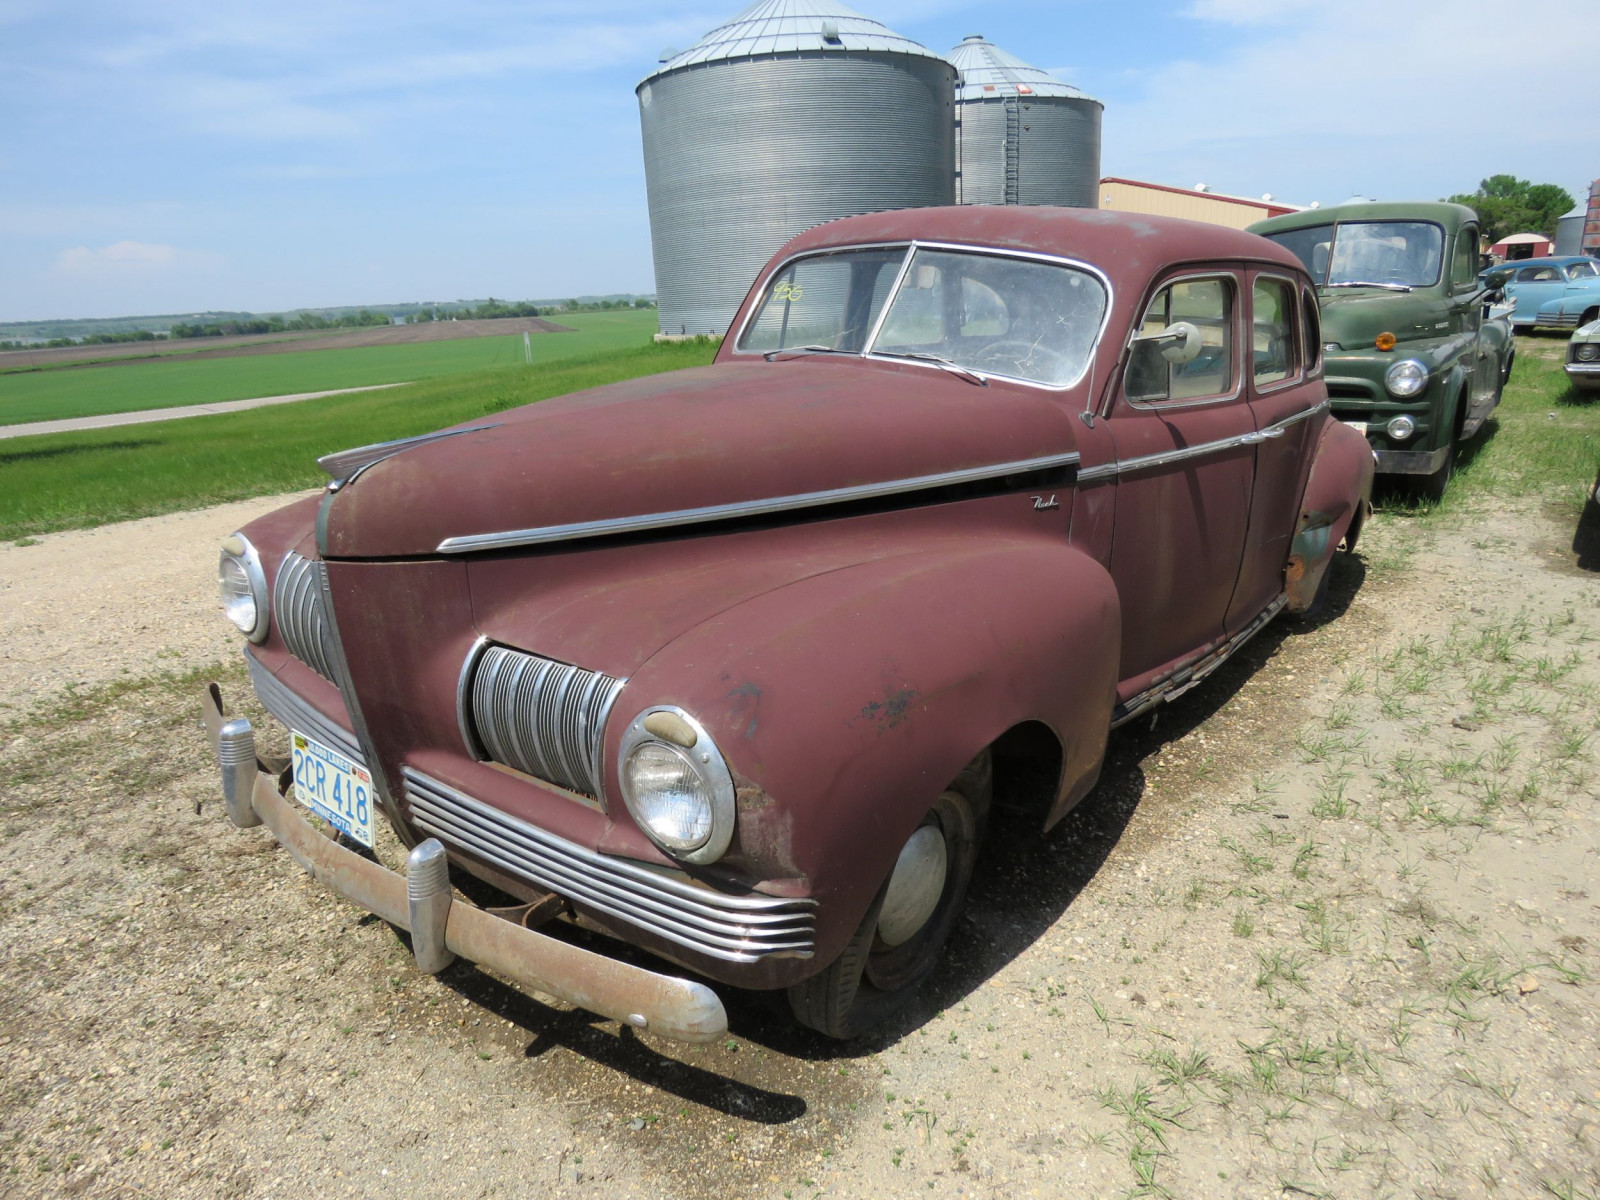 1941 Nash 6 4dr Suicide Sedan for Rod or Restore - Image 2